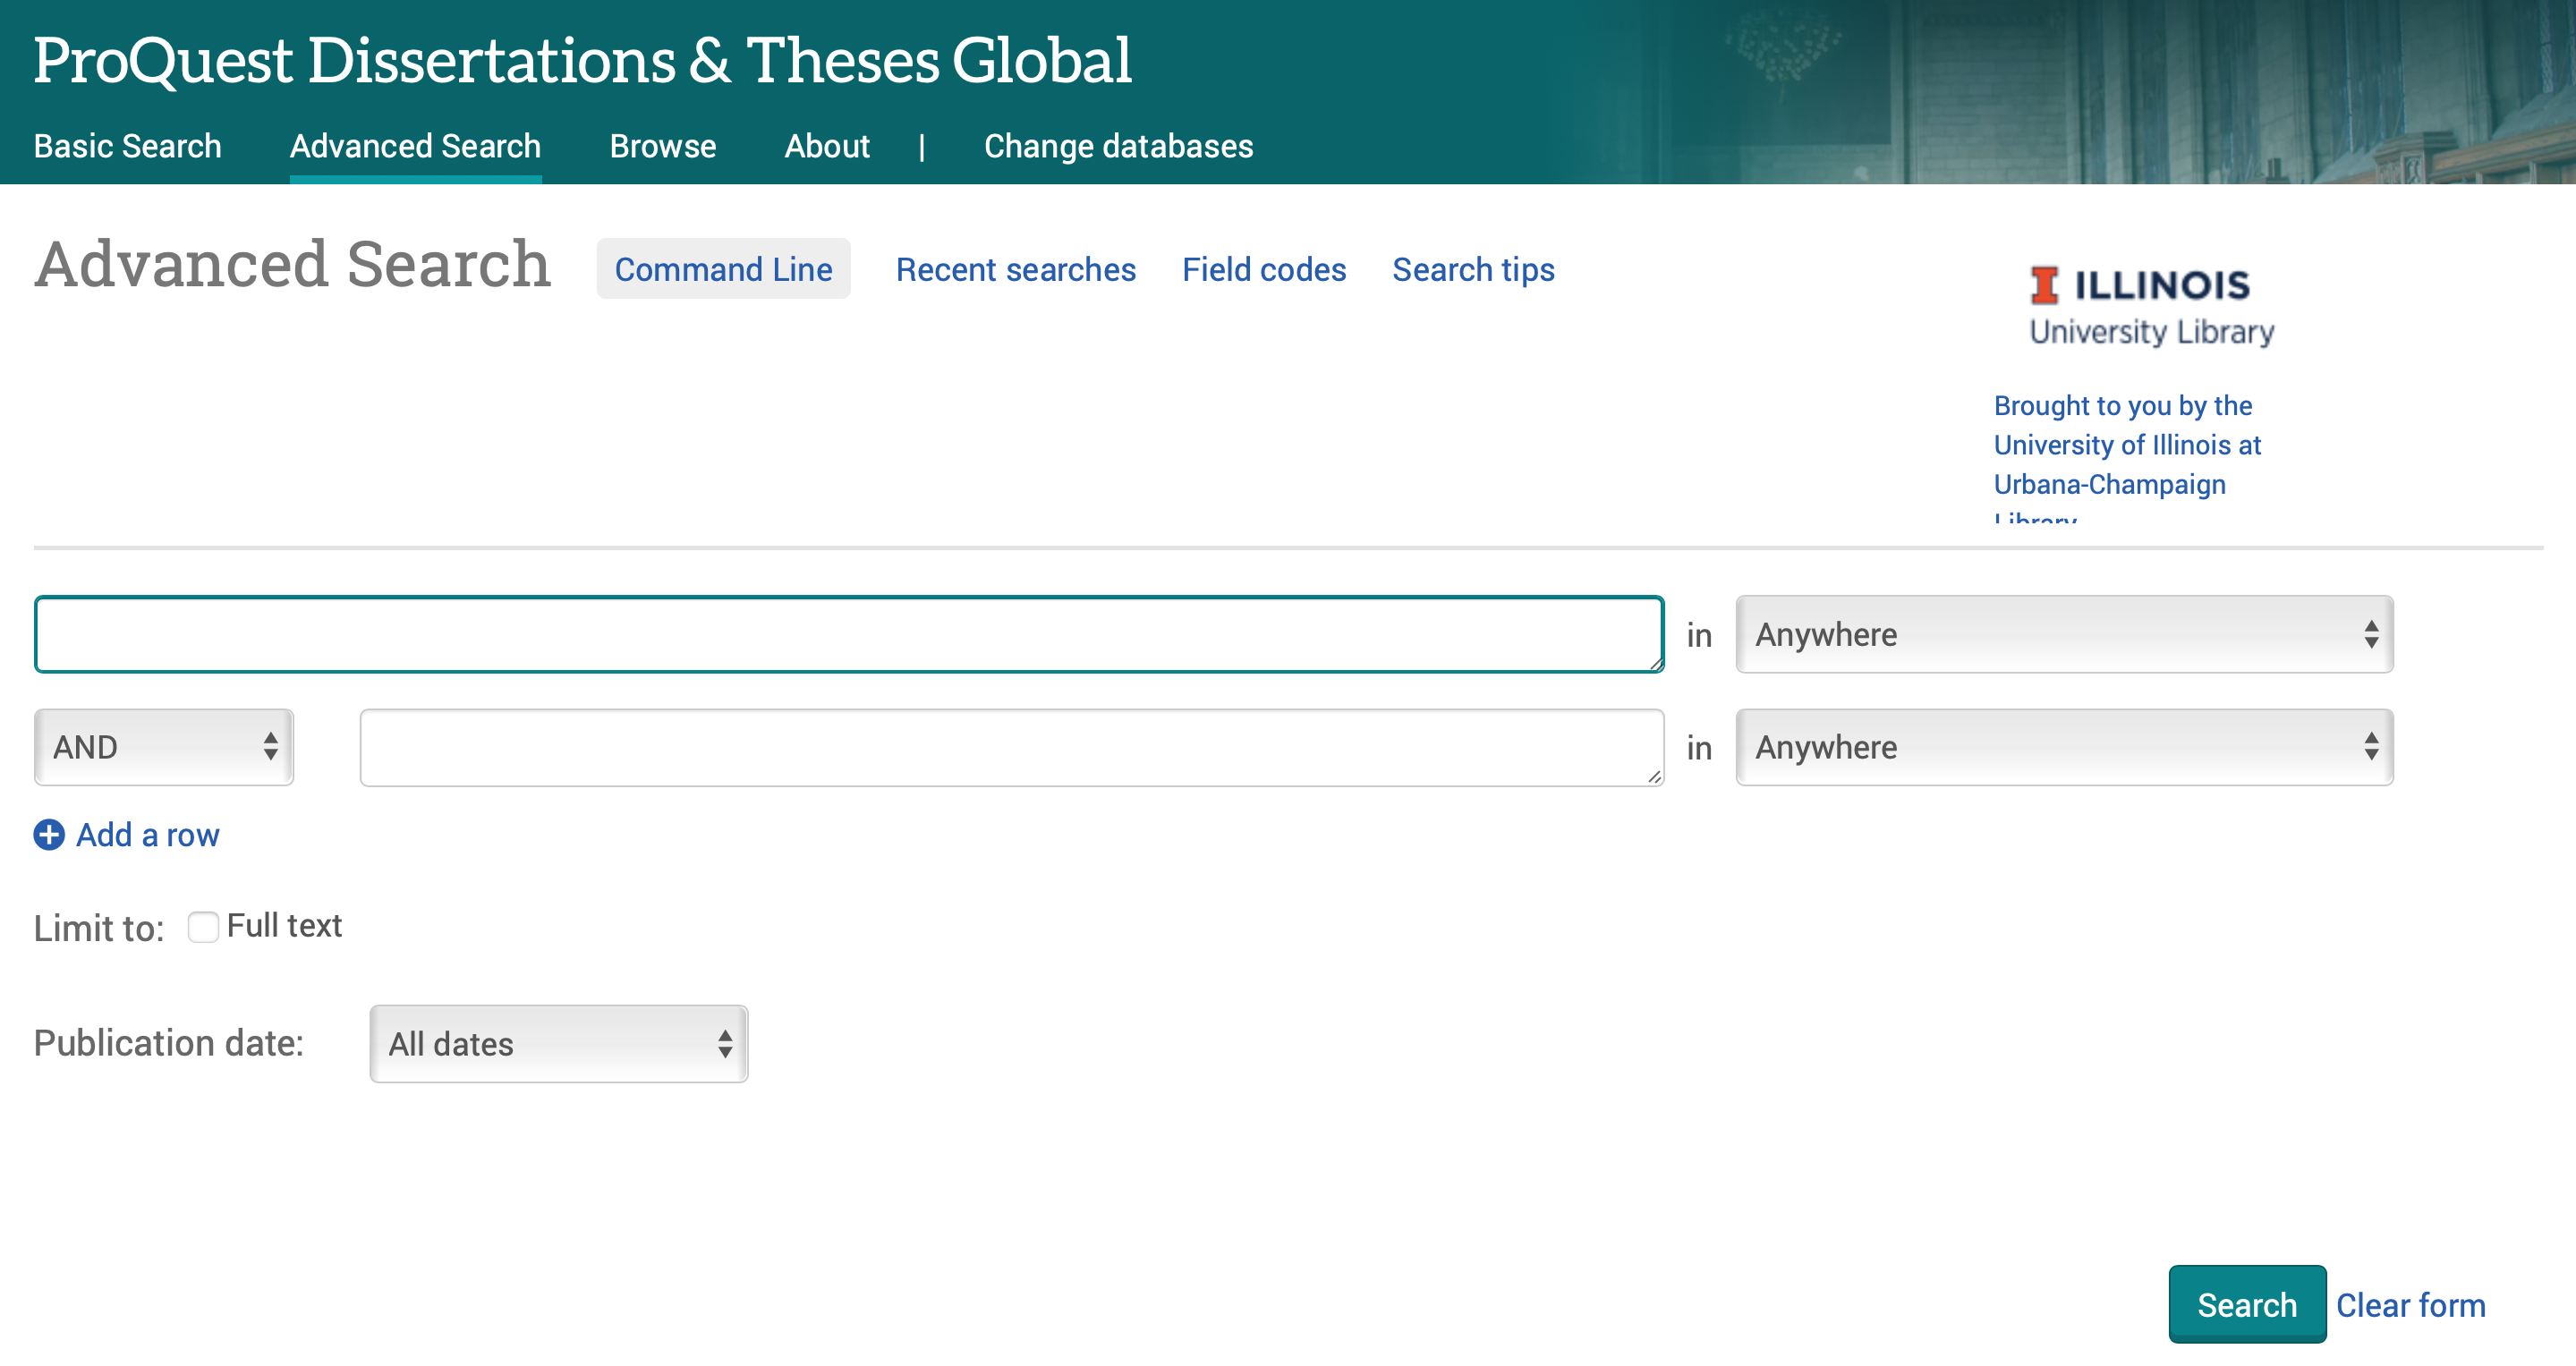 Image showing ProQuest Dissertations & Theses' Advanced Search box.